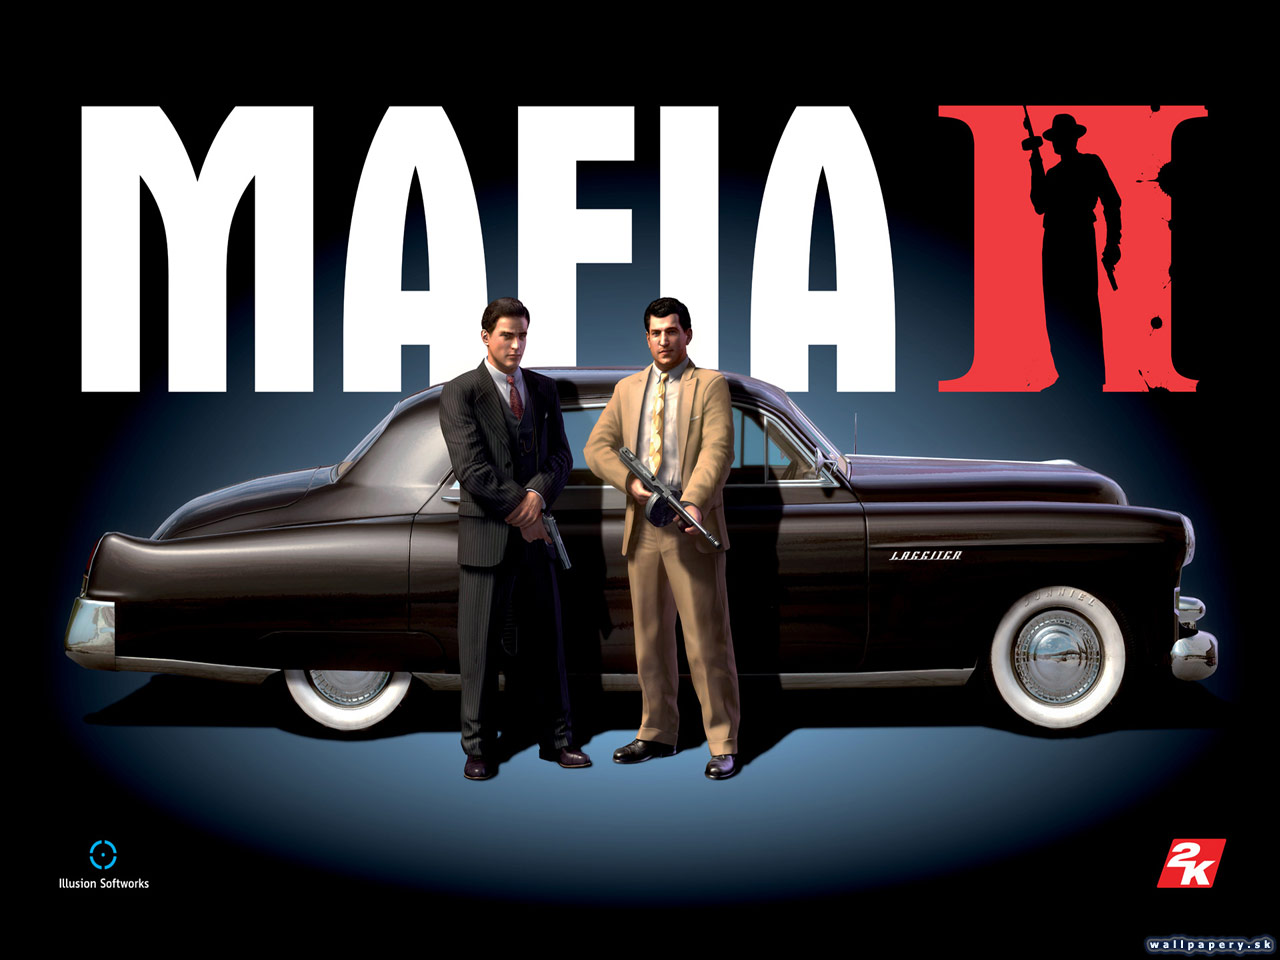 Mafia 2 - wallpaper 1